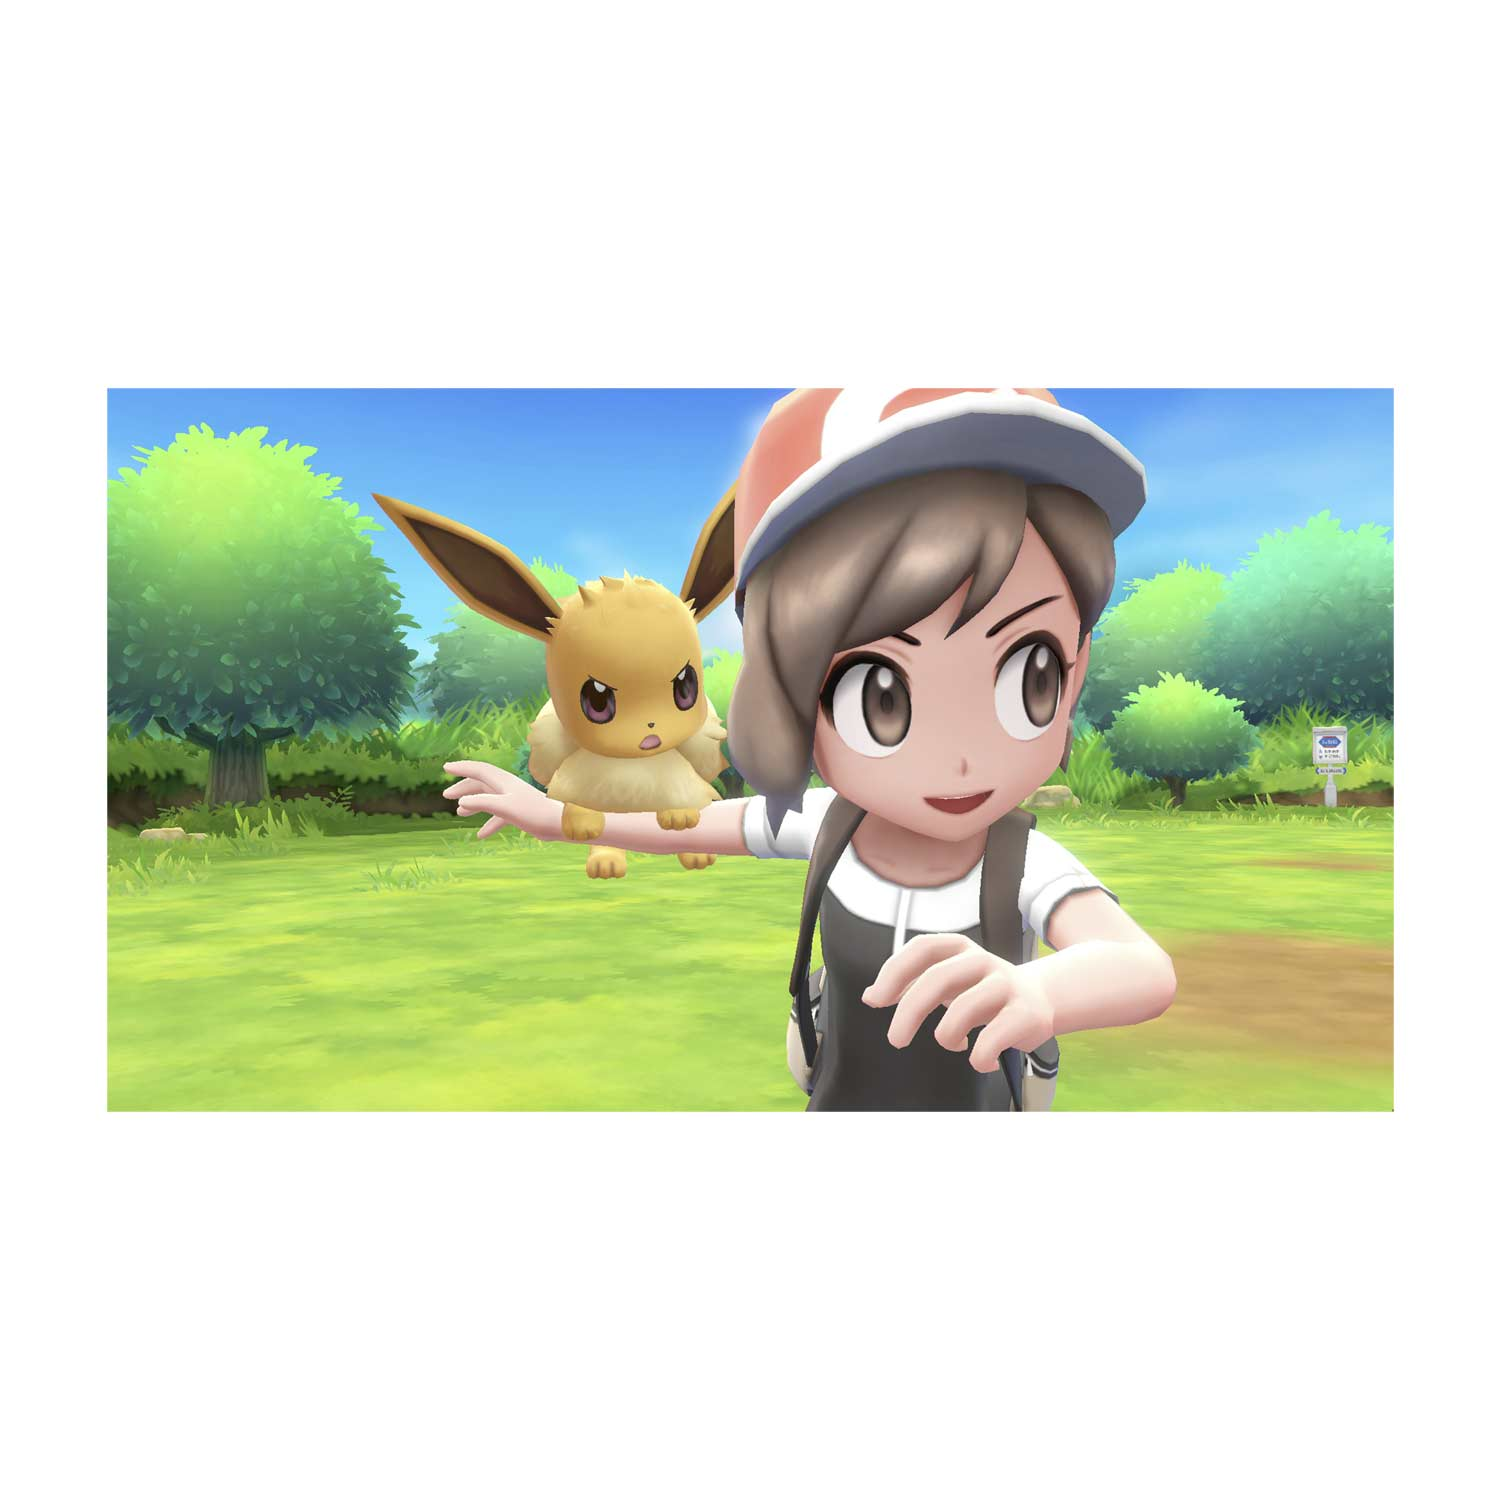 Pokémon: Let's Go, Eevee! for Nintendo Switch | Pokémon Center